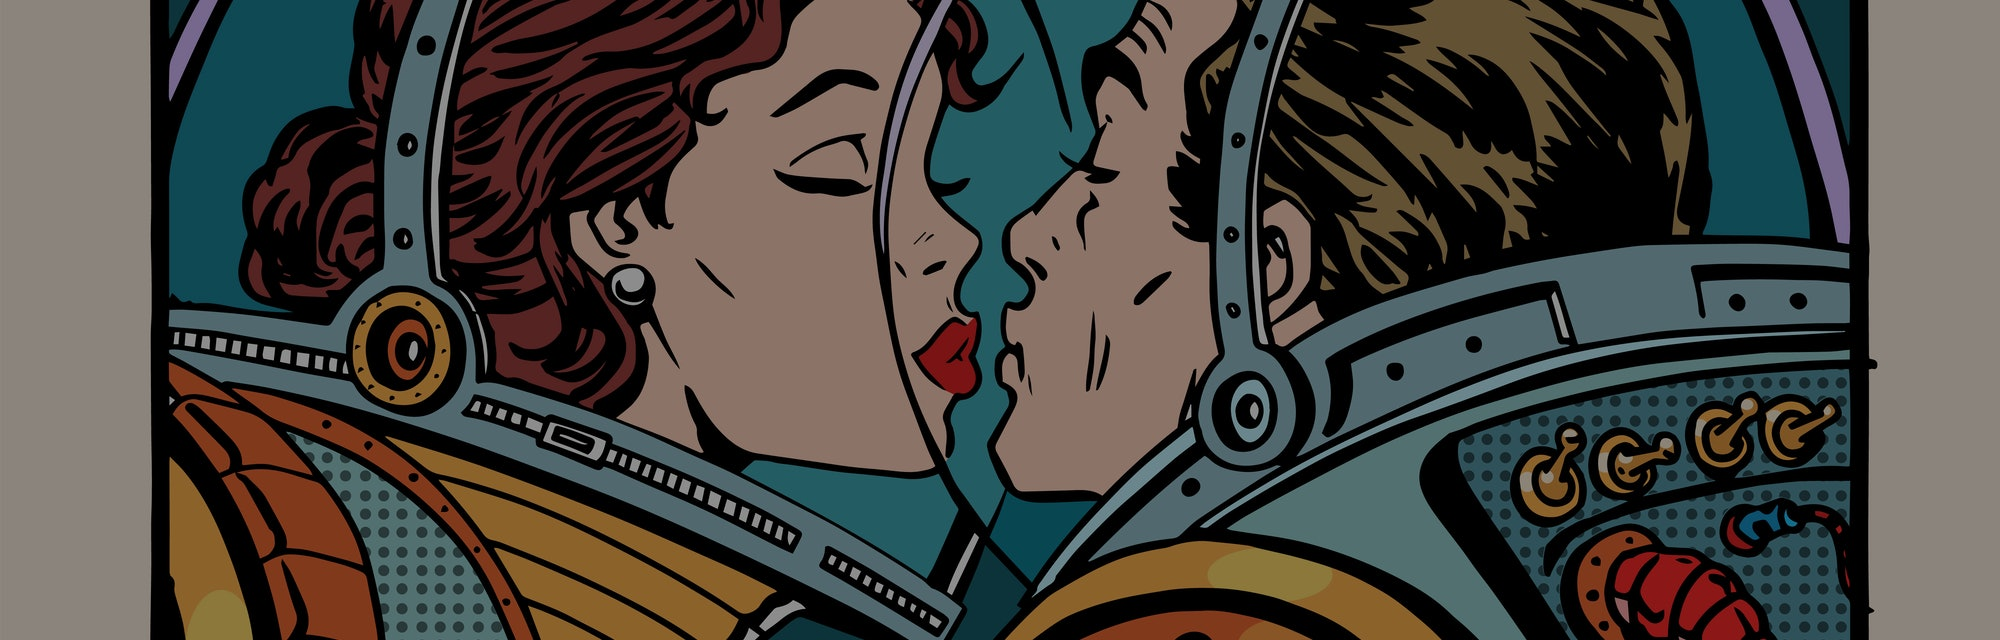 As plans for space exploration expand, how will sex and desire be addressed in these larger, longer missions?